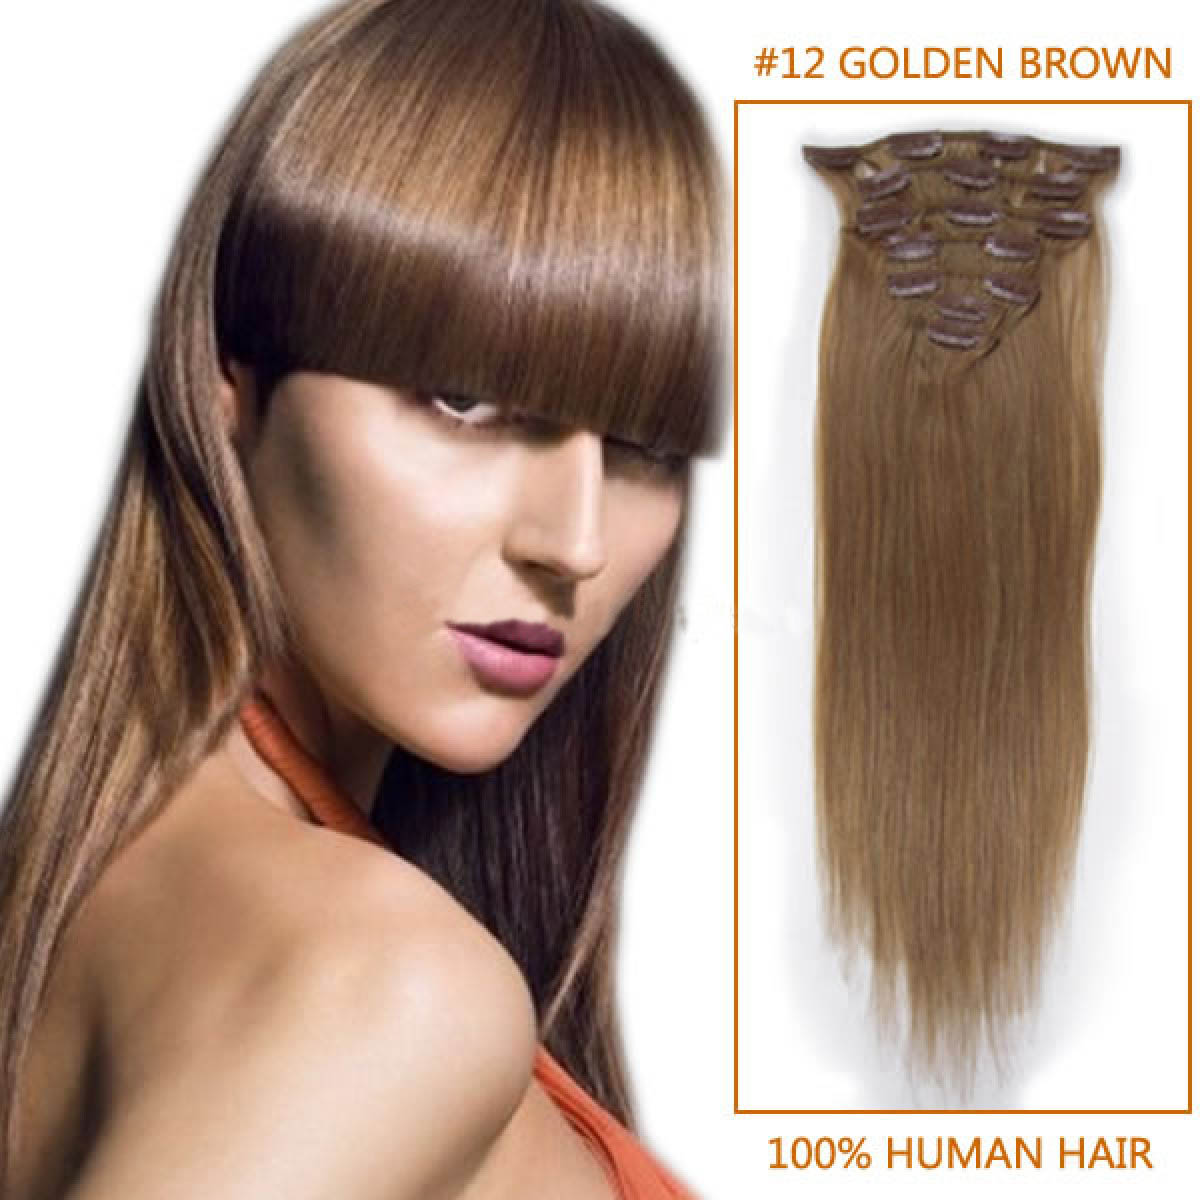 26 Inch 12 Golden Brown Clip In Remy Human Hair Extensions 9pcs